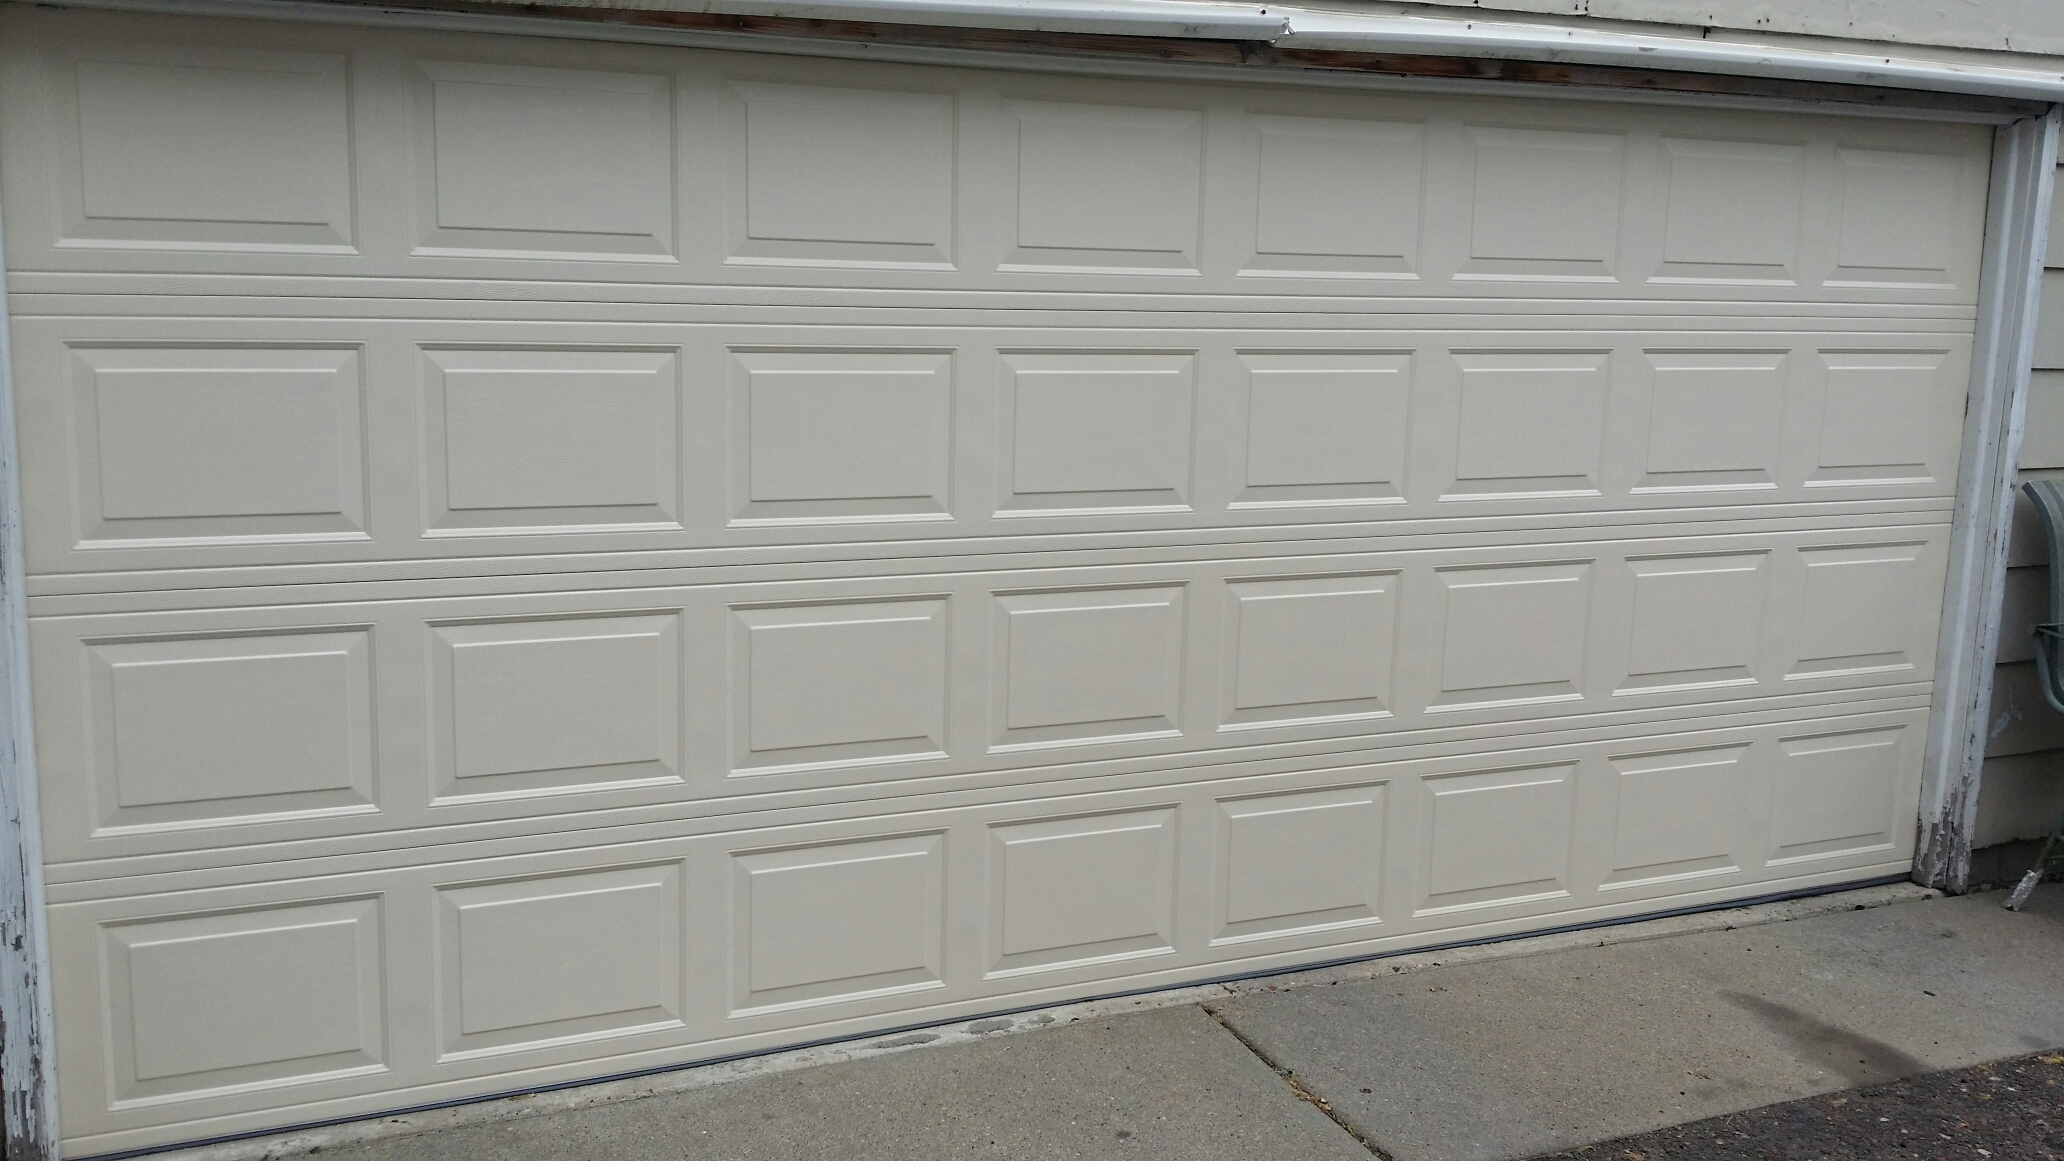 Montrose, MN - Jon installed North Central RP25 16x7 garage door